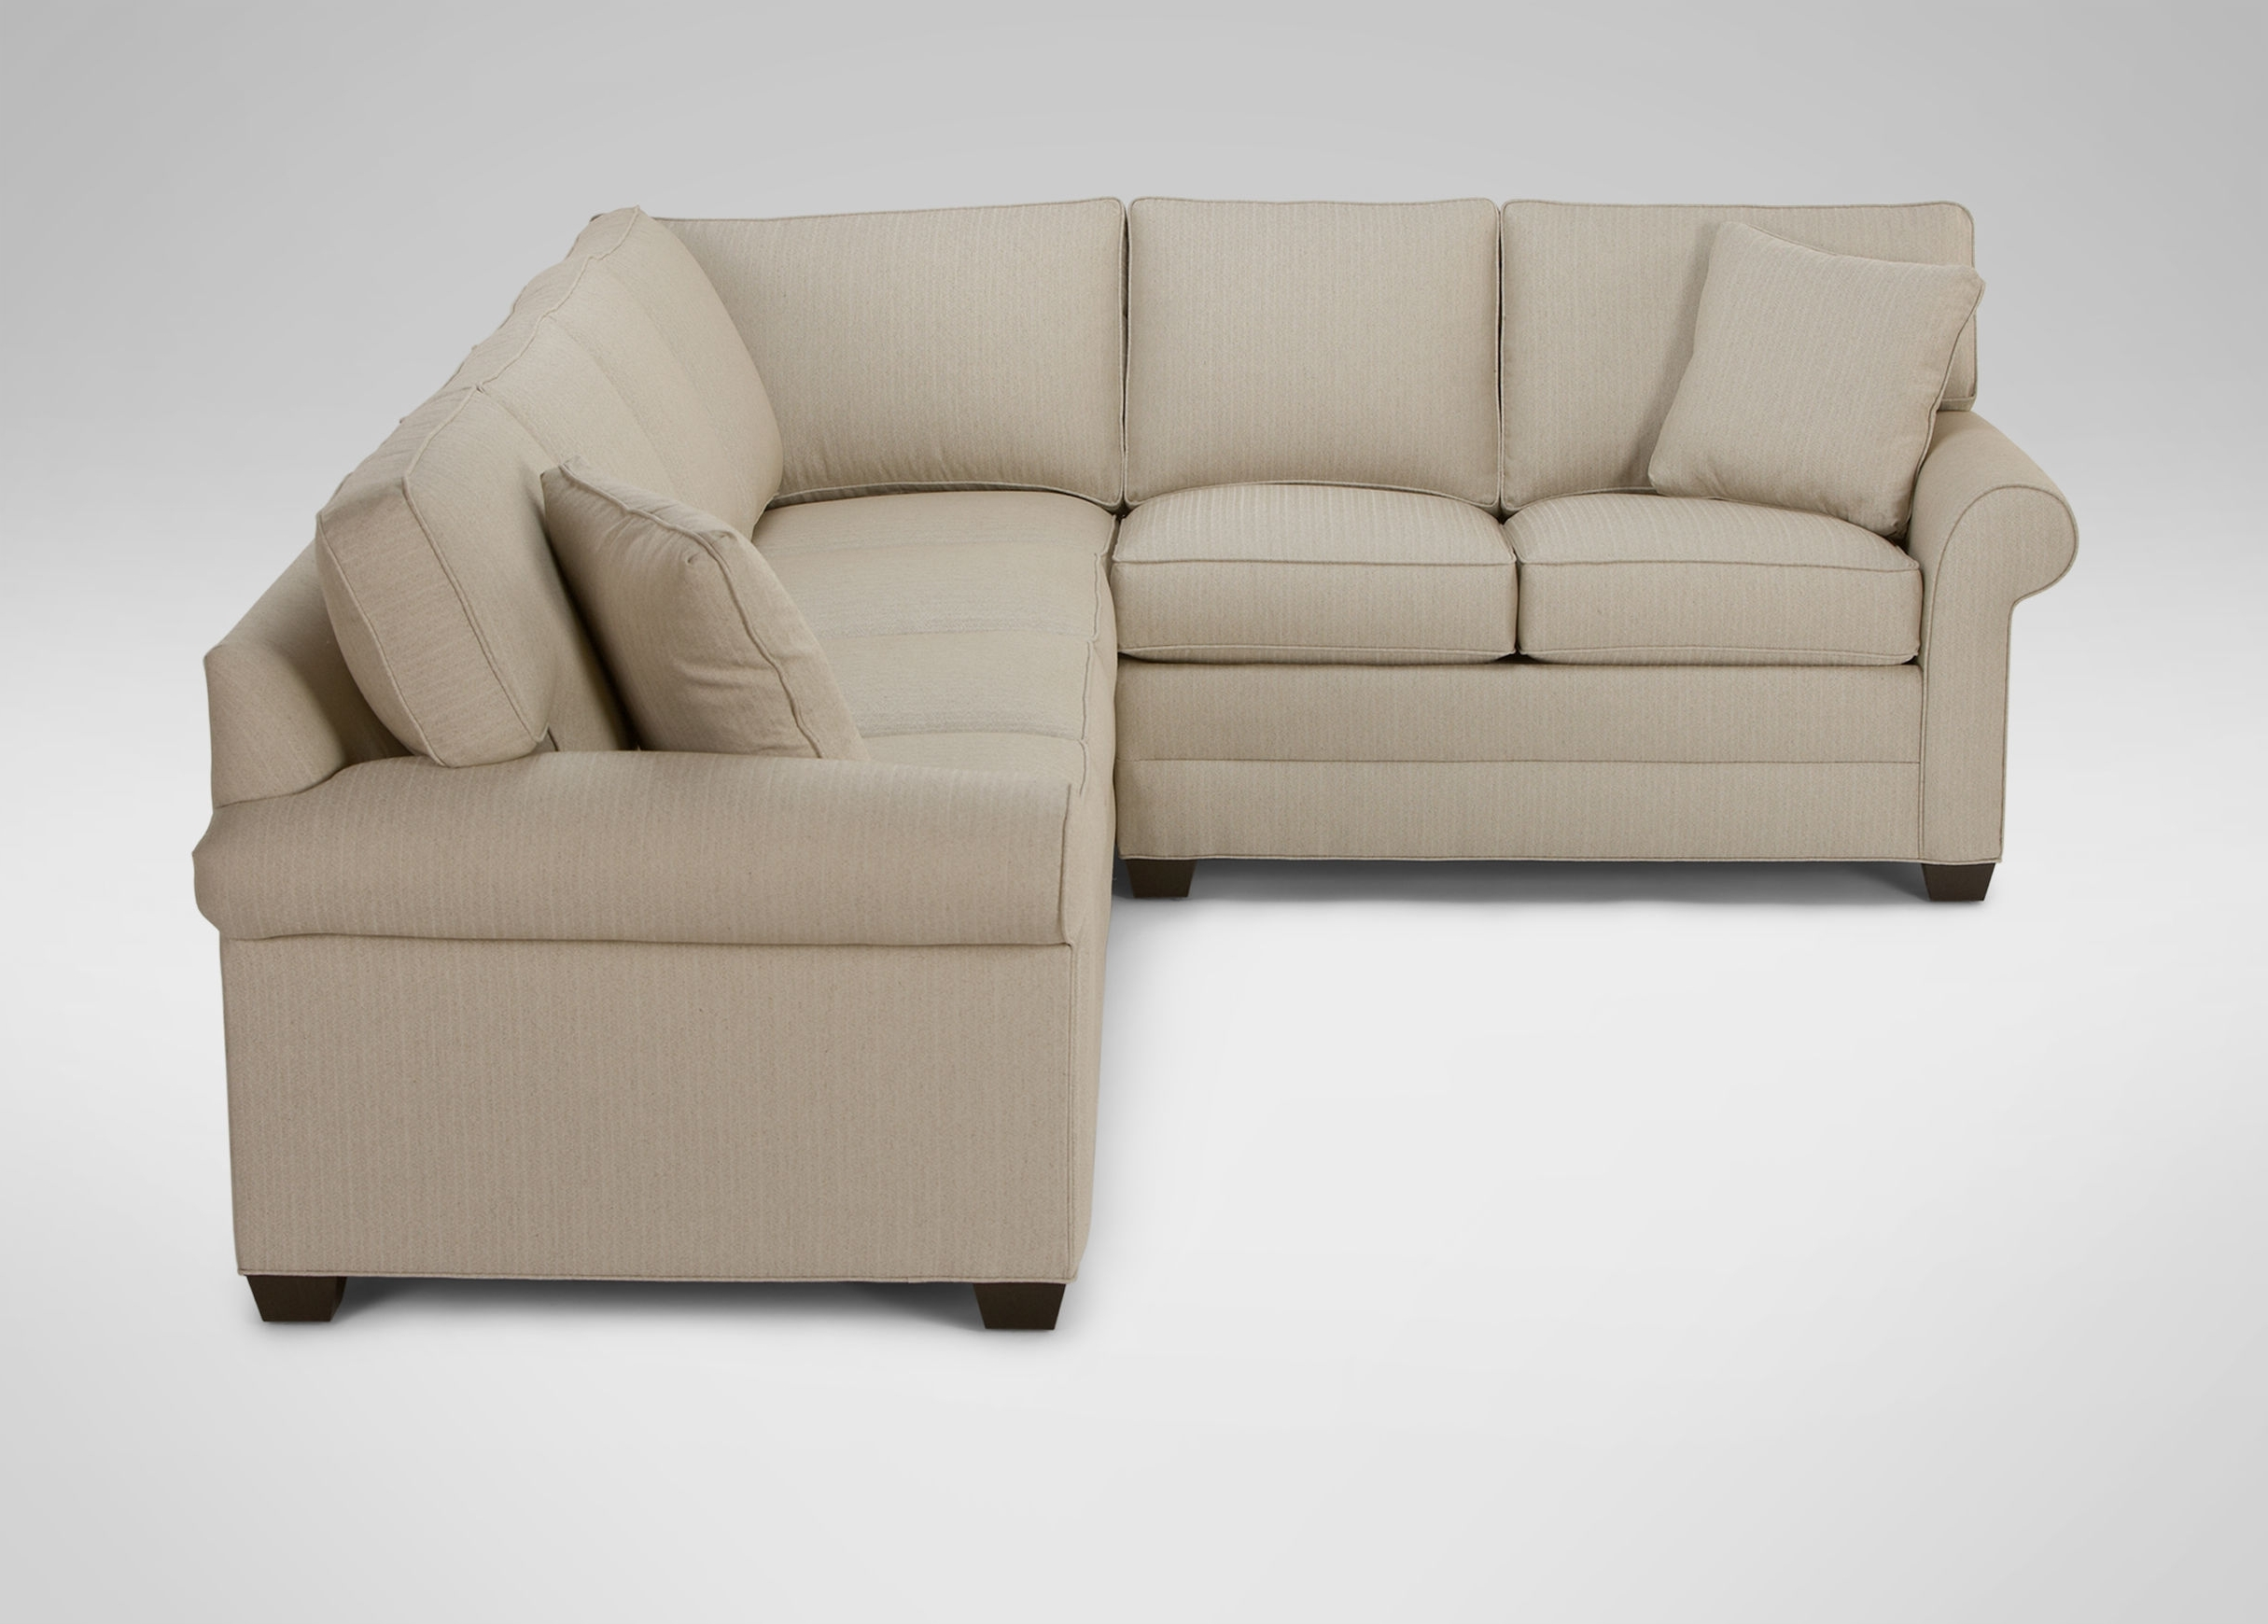 Sectional Sofa Design: Best Ethan Allen Sectional Sofa Ever Ethan With Regard To Trendy Sectional Sofas At Ethan Allen (View 9 of 15)